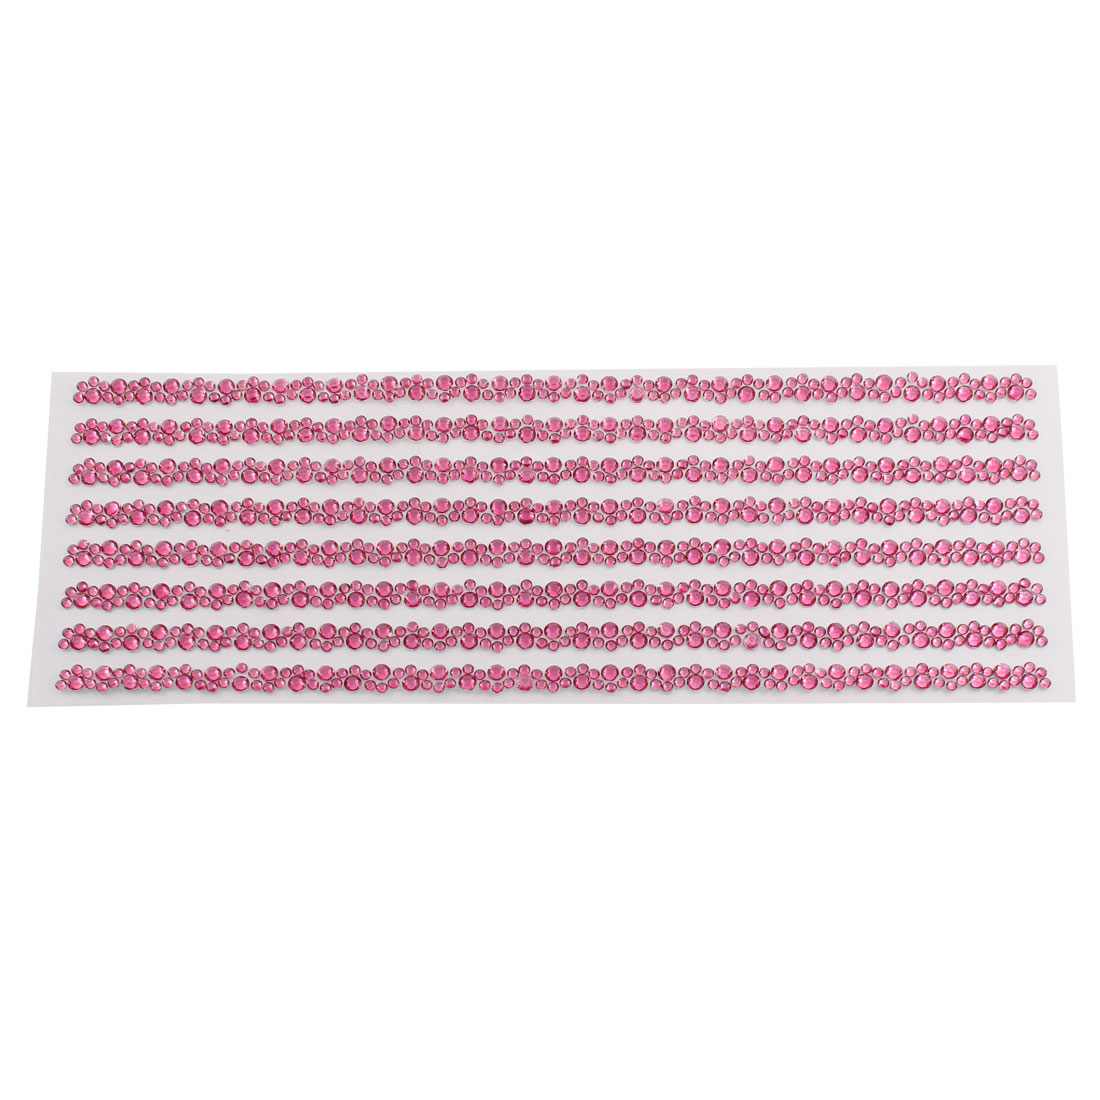 Fuchsia Self Adhesive Crystal Rhinestone Car Decorating DIY Stickers 255mm x 90mm